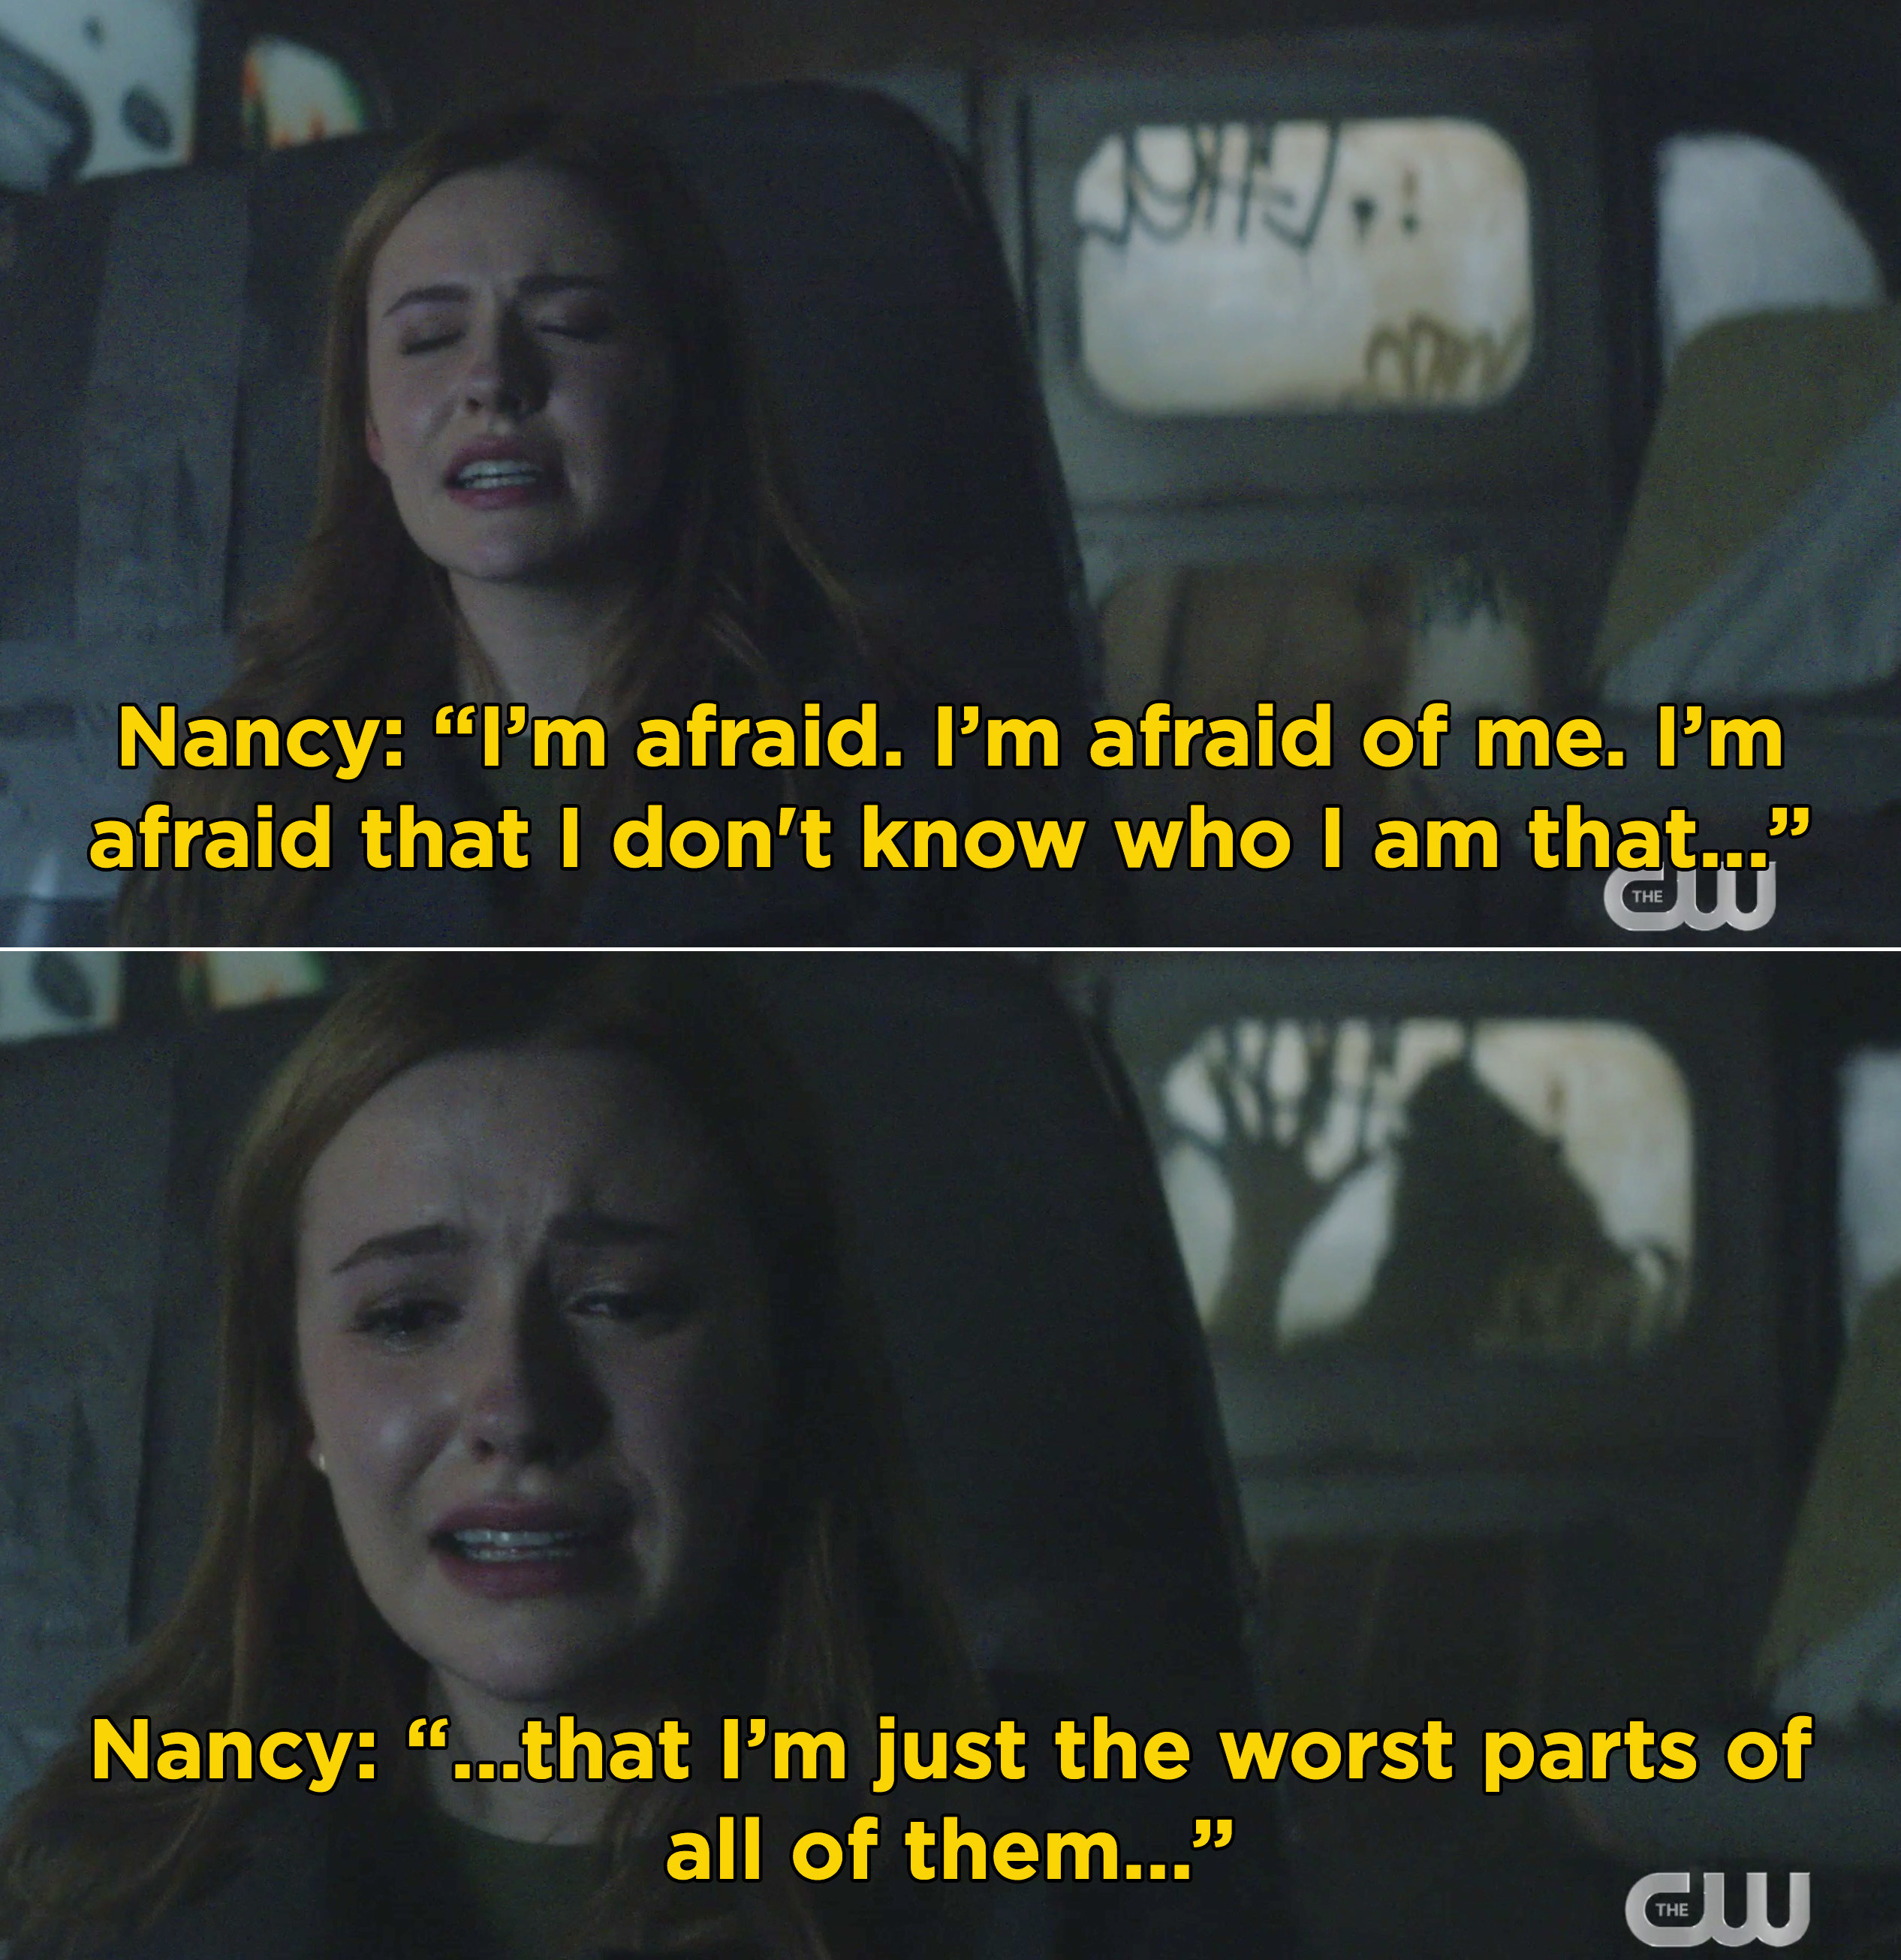 """Nancy saying, """"I'm afraid of me. I'm afraid that I don't know who I am that I'm just the worst parts of all of them..."""""""